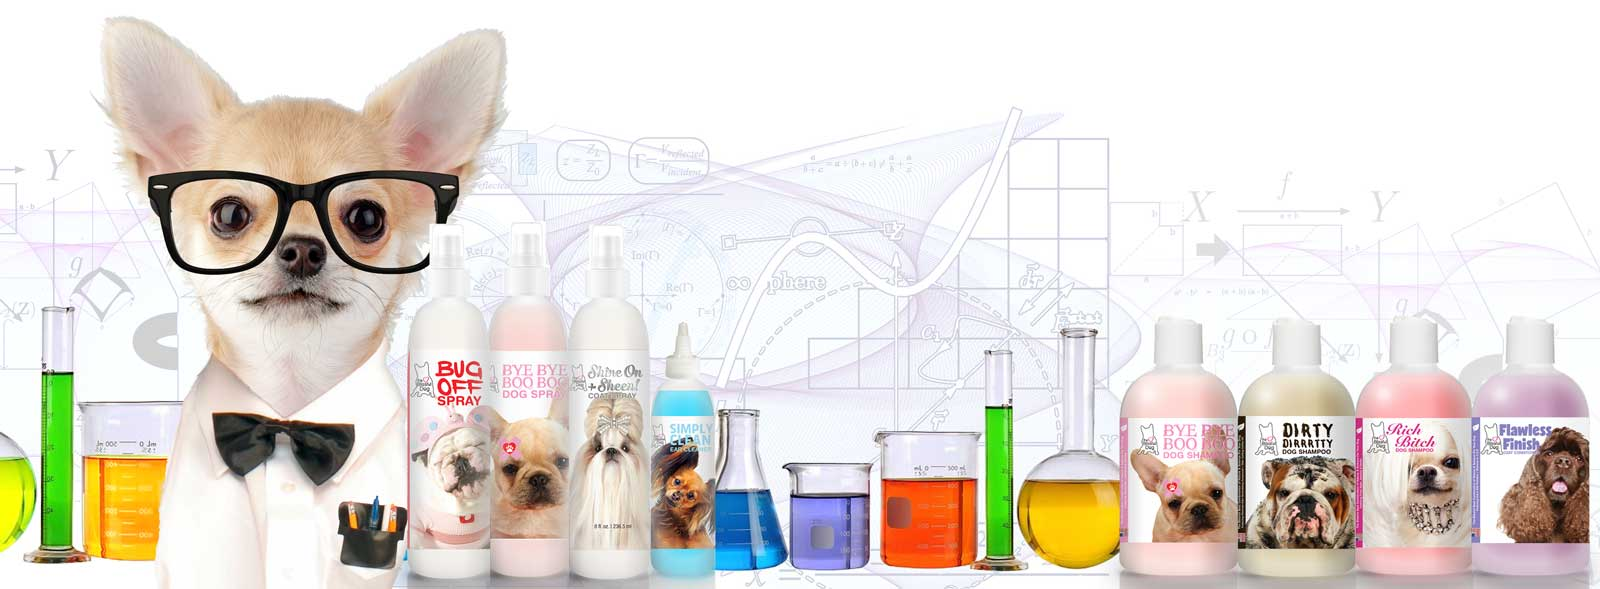 science of dog grooming